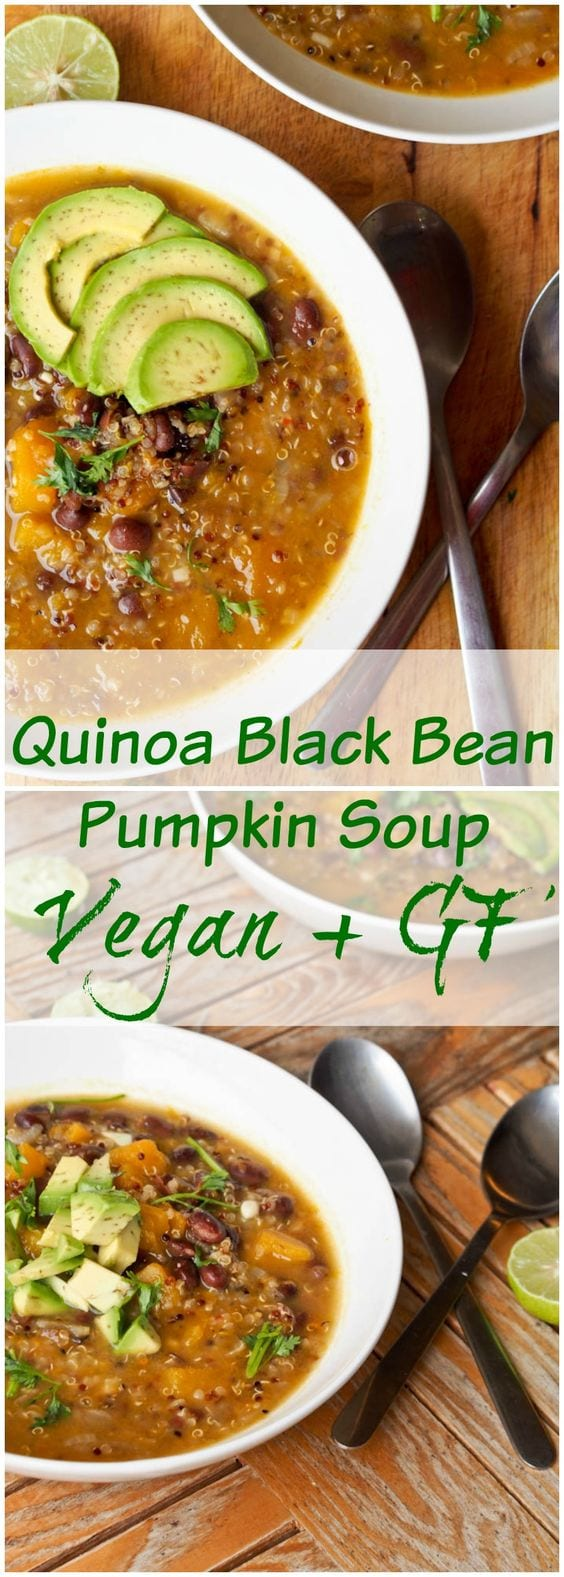 Vegan Quinoa Black Bean Pumpkin Soup is the ultimate one pot fall inspired meal. 35 minutes from start to finish with uber healthy ingredients. A real feel good meal. #vegan #quinoa #healthy #dinner #soup #fall